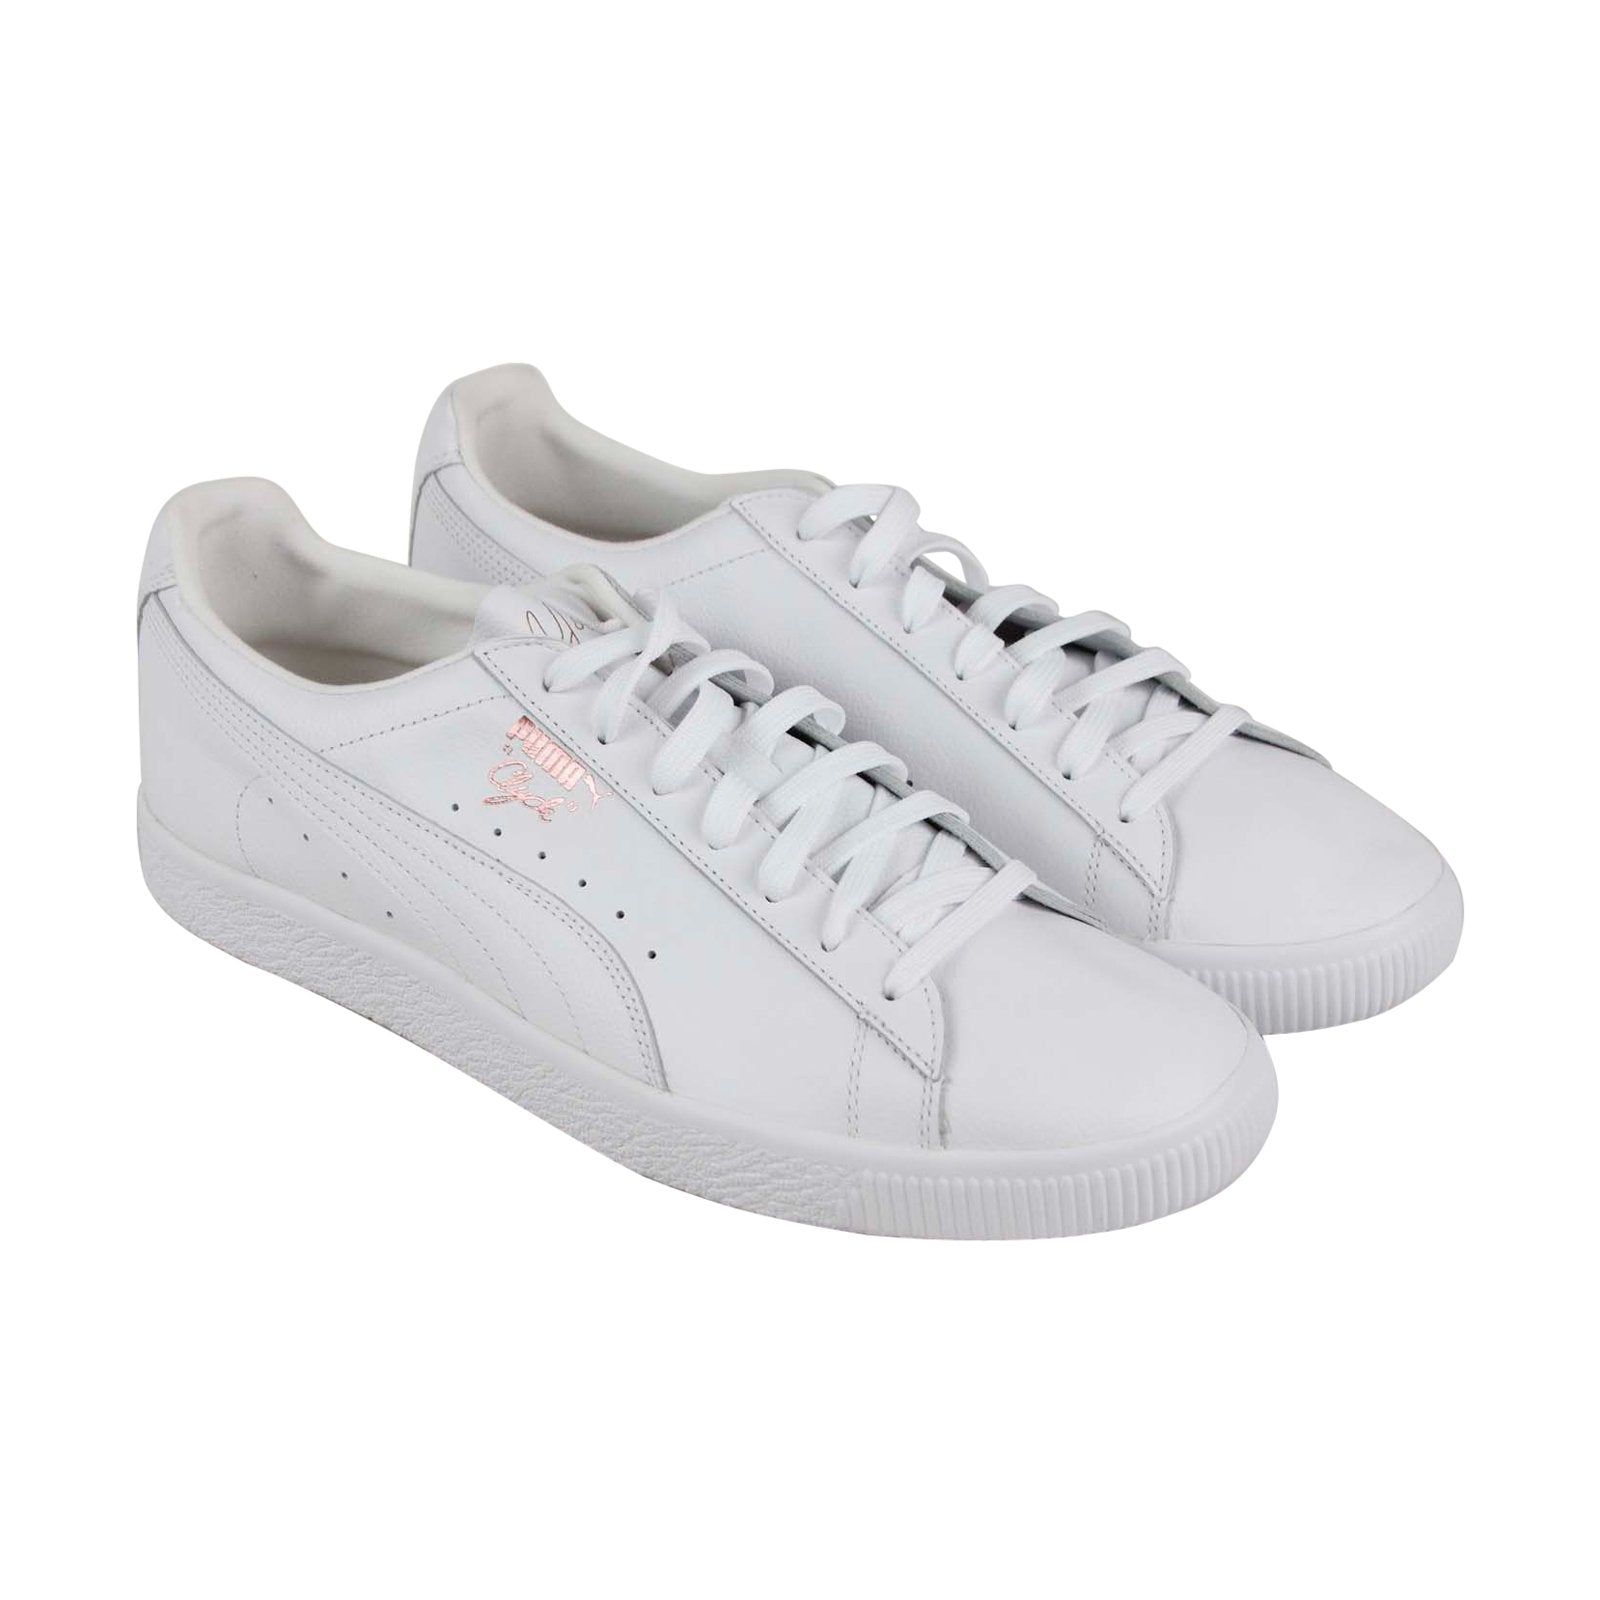 buy popular 45c3e 688de Puma Clyde X Emory Jones Mens White Leather Low Top Lace Up Sneakers Shoes